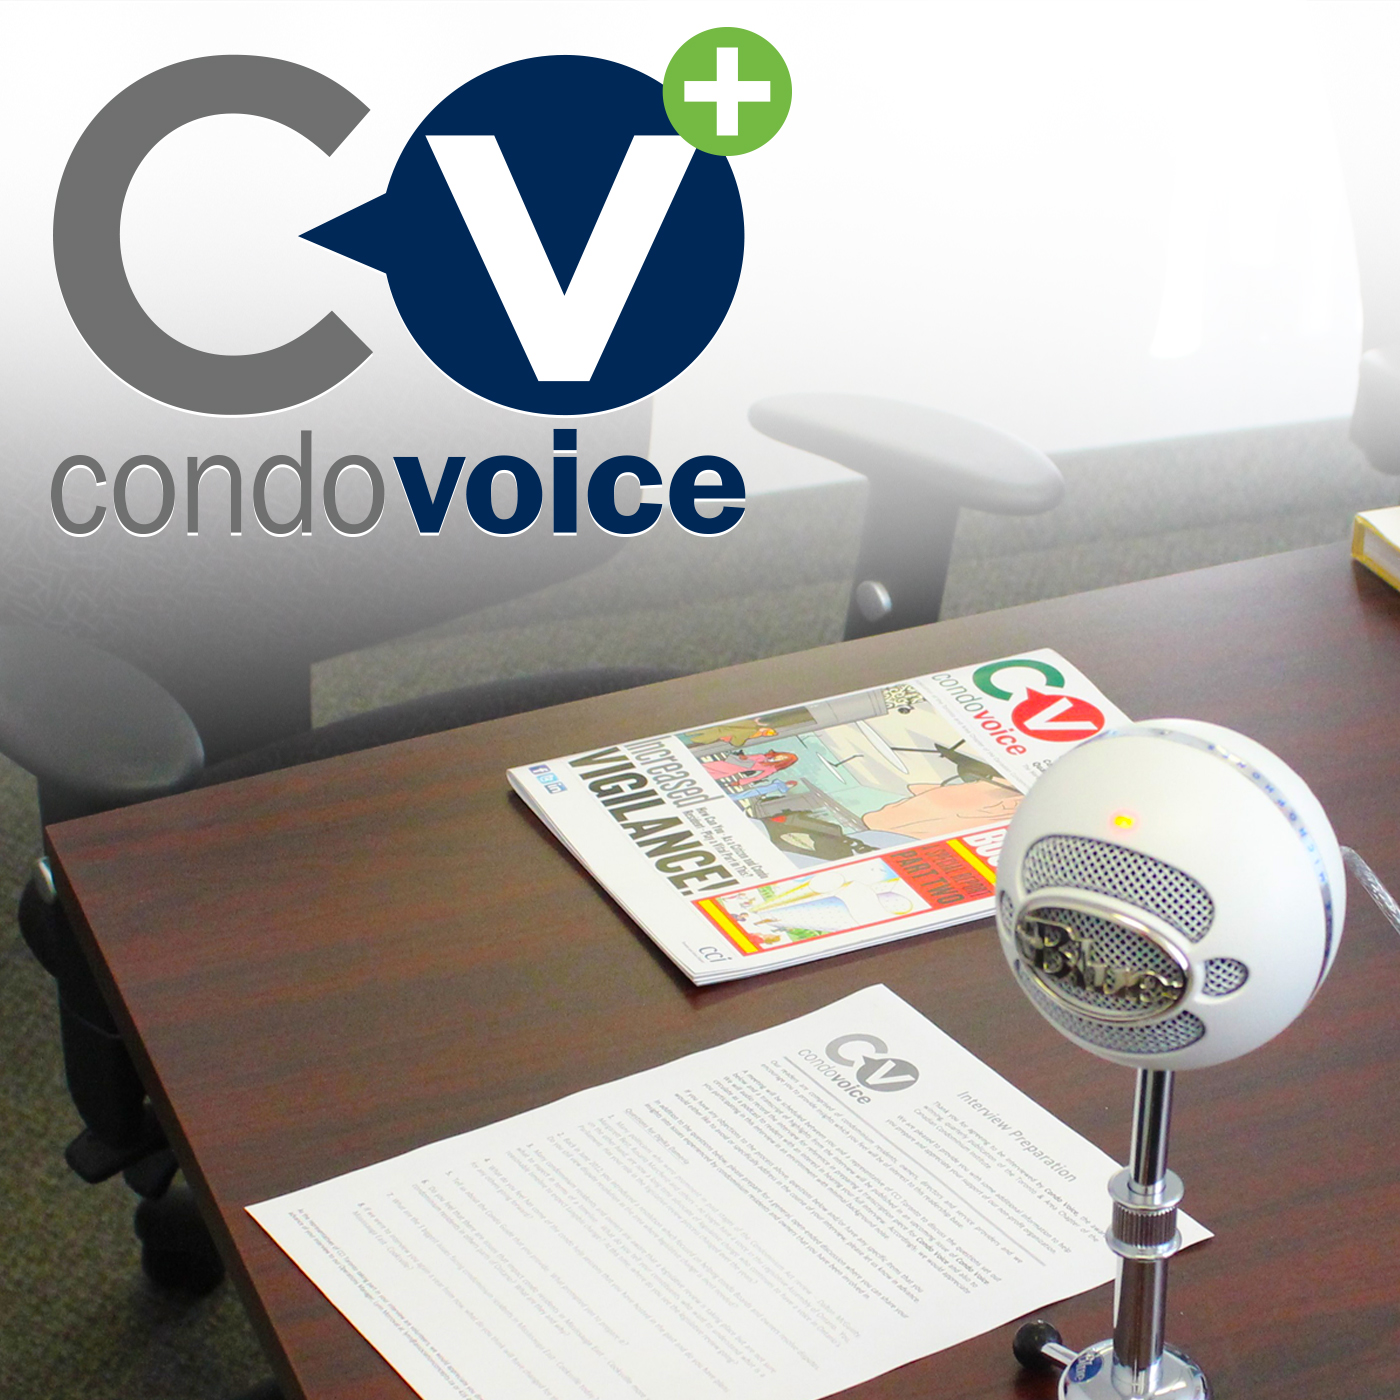 CCI-Toronto - CV+ Podcast, Fall 2015